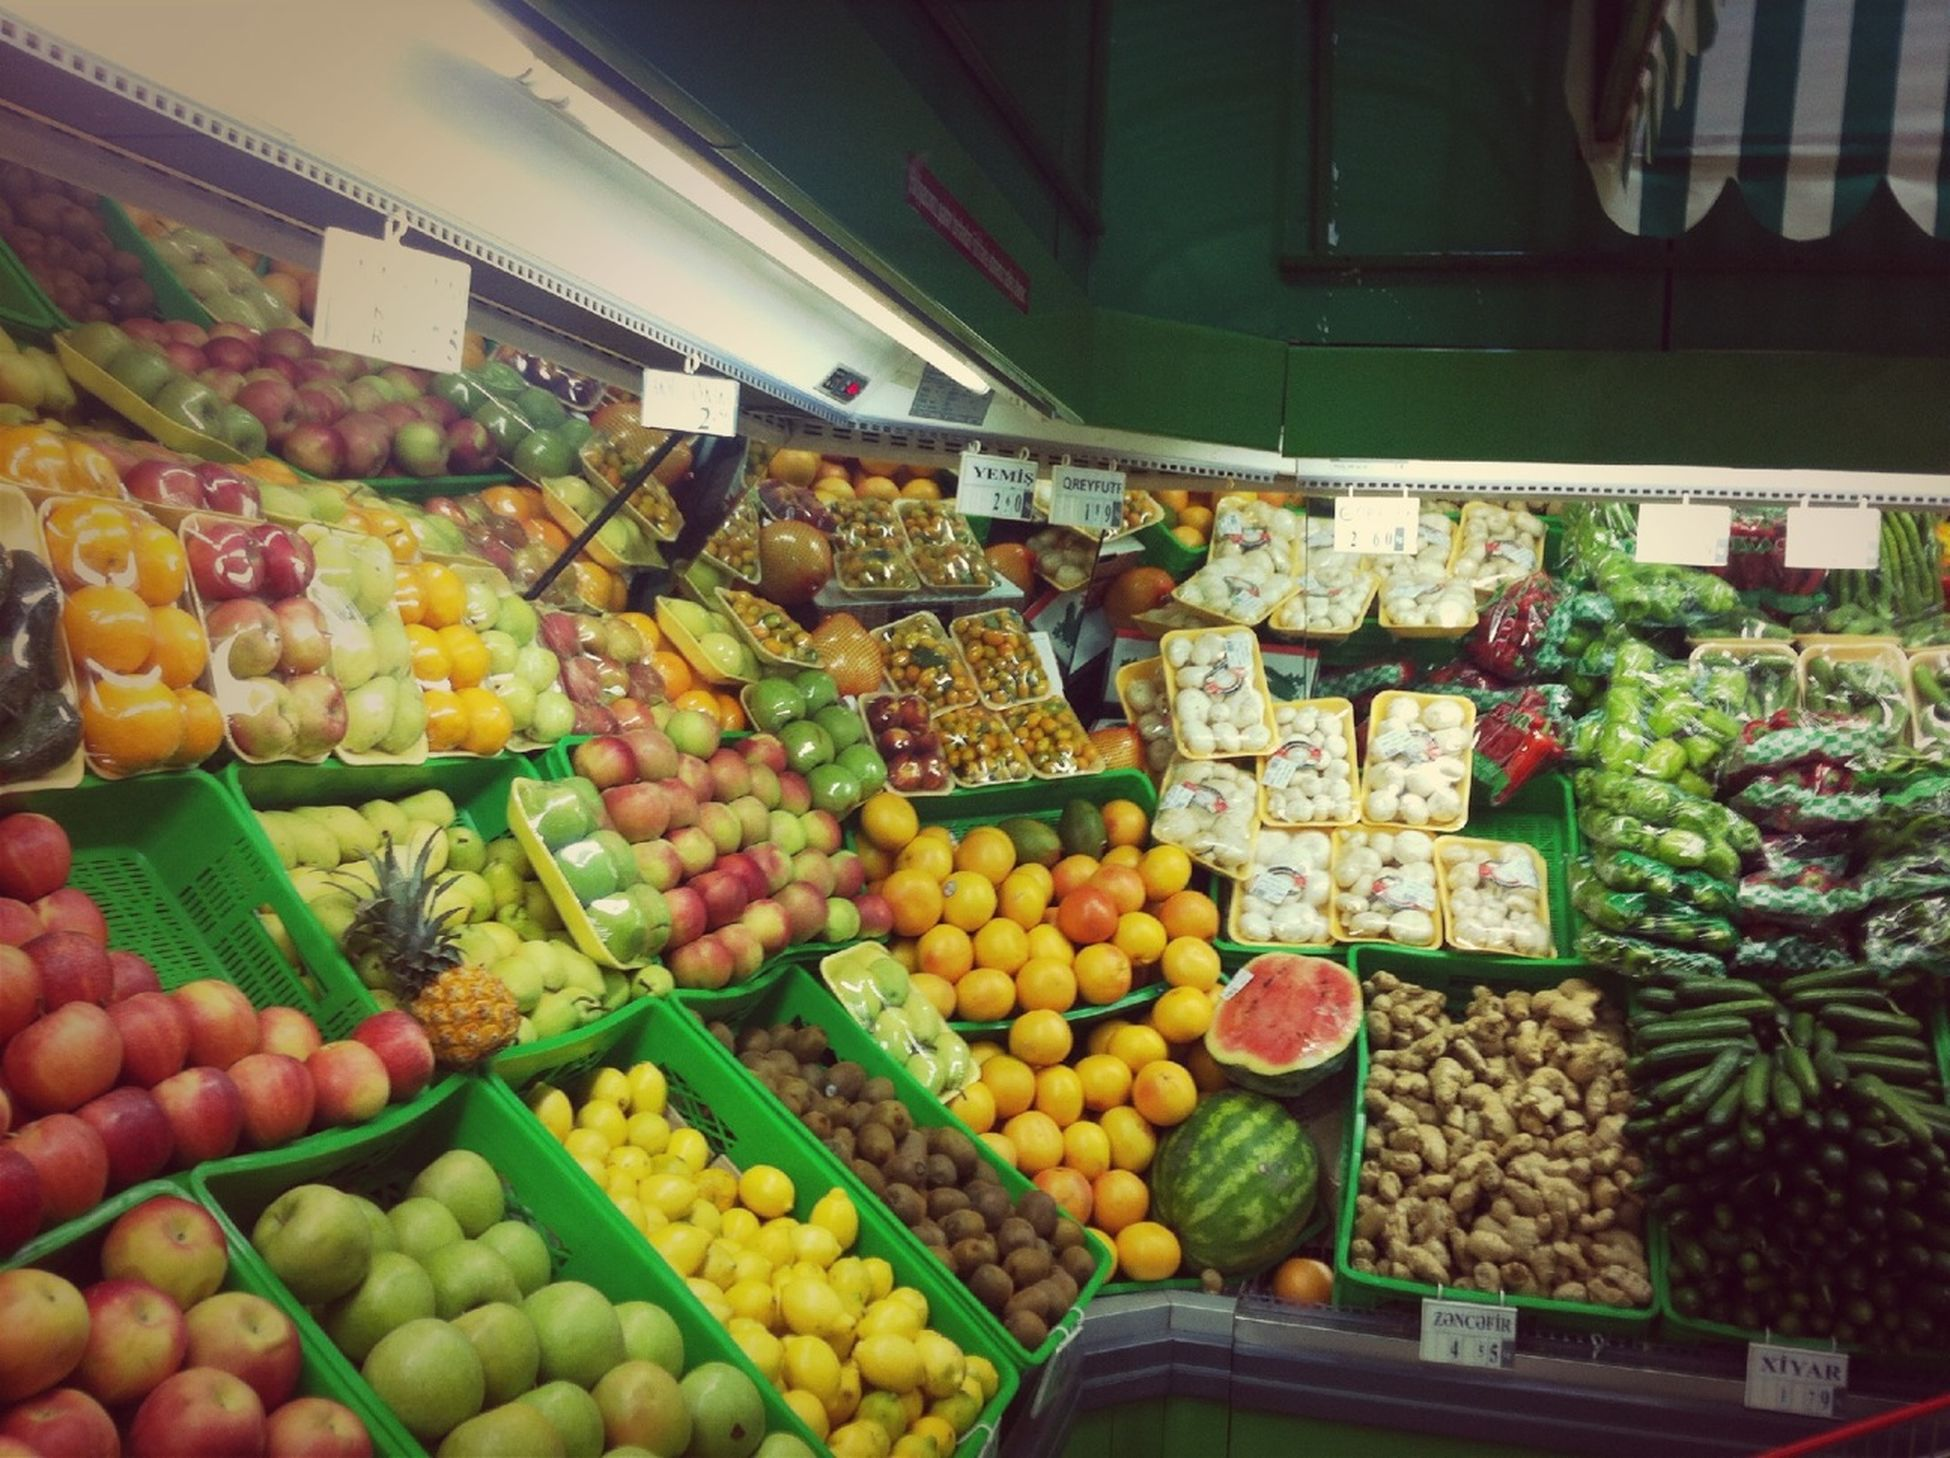 food and drink, food, retail, for sale, market, market stall, healthy eating, choice, variation, abundance, freshness, large group of objects, sale, vegetable, display, price tag, store, small business, indoors, consumerism